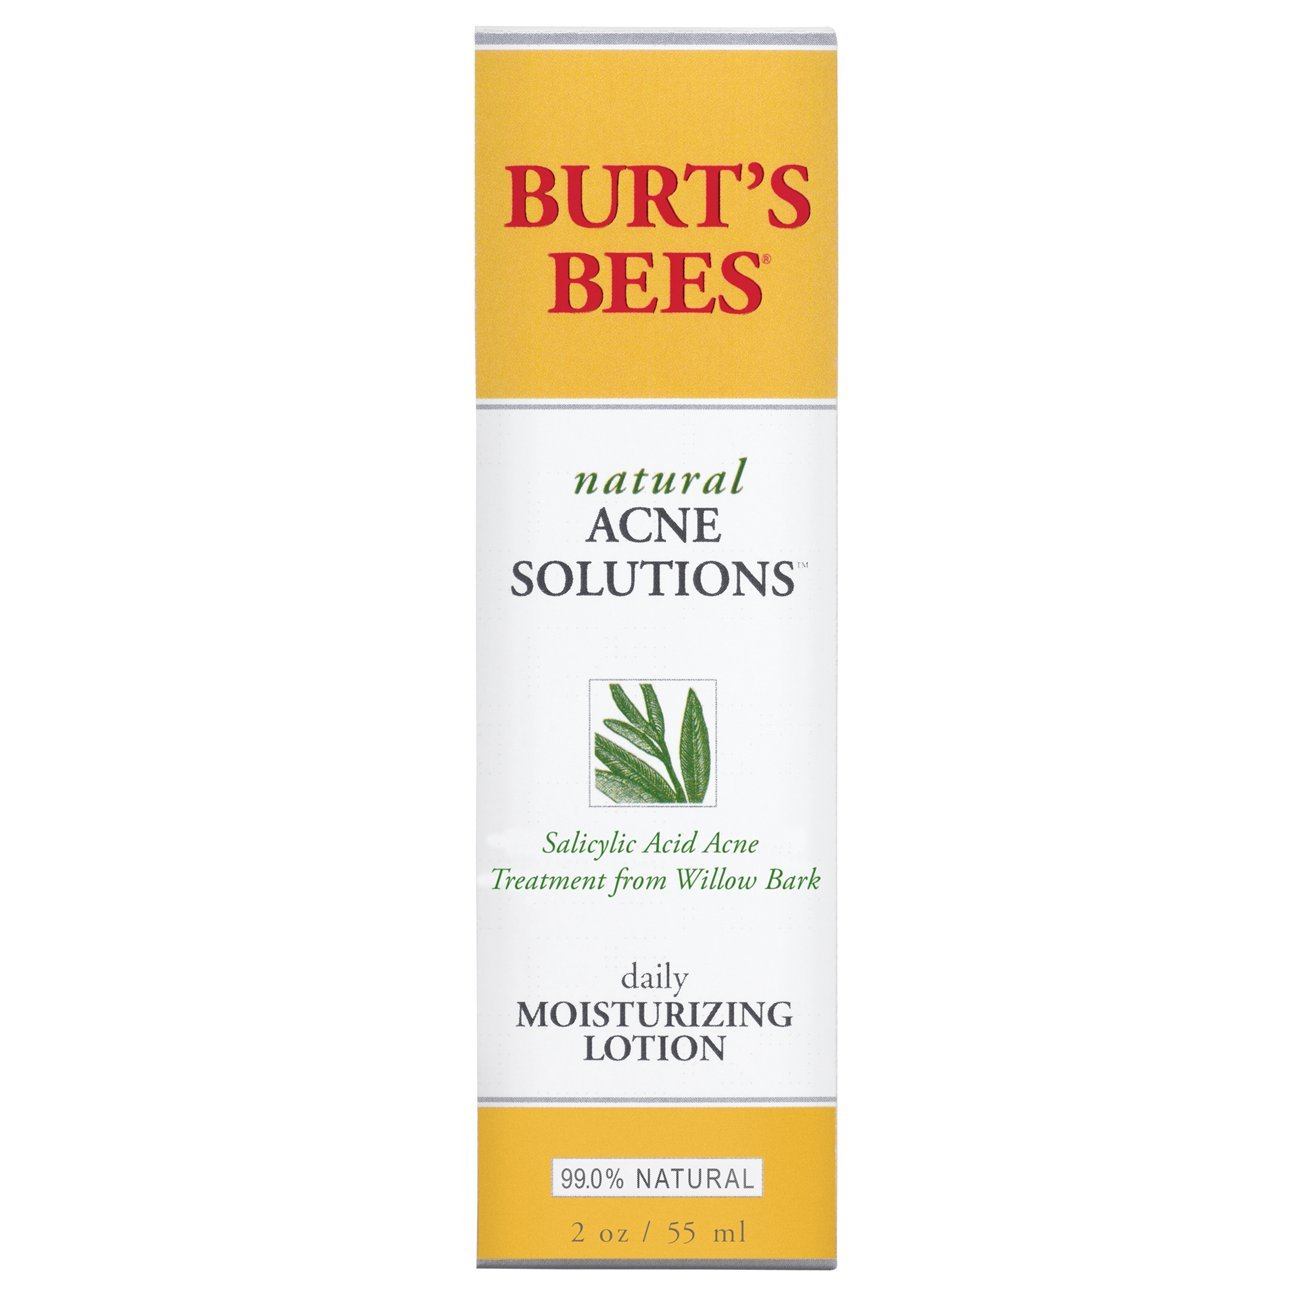 Burt's Bees Natural Acne Solutions Daily Moisturizing Lotion, Face Moisturizer for Oily Skin